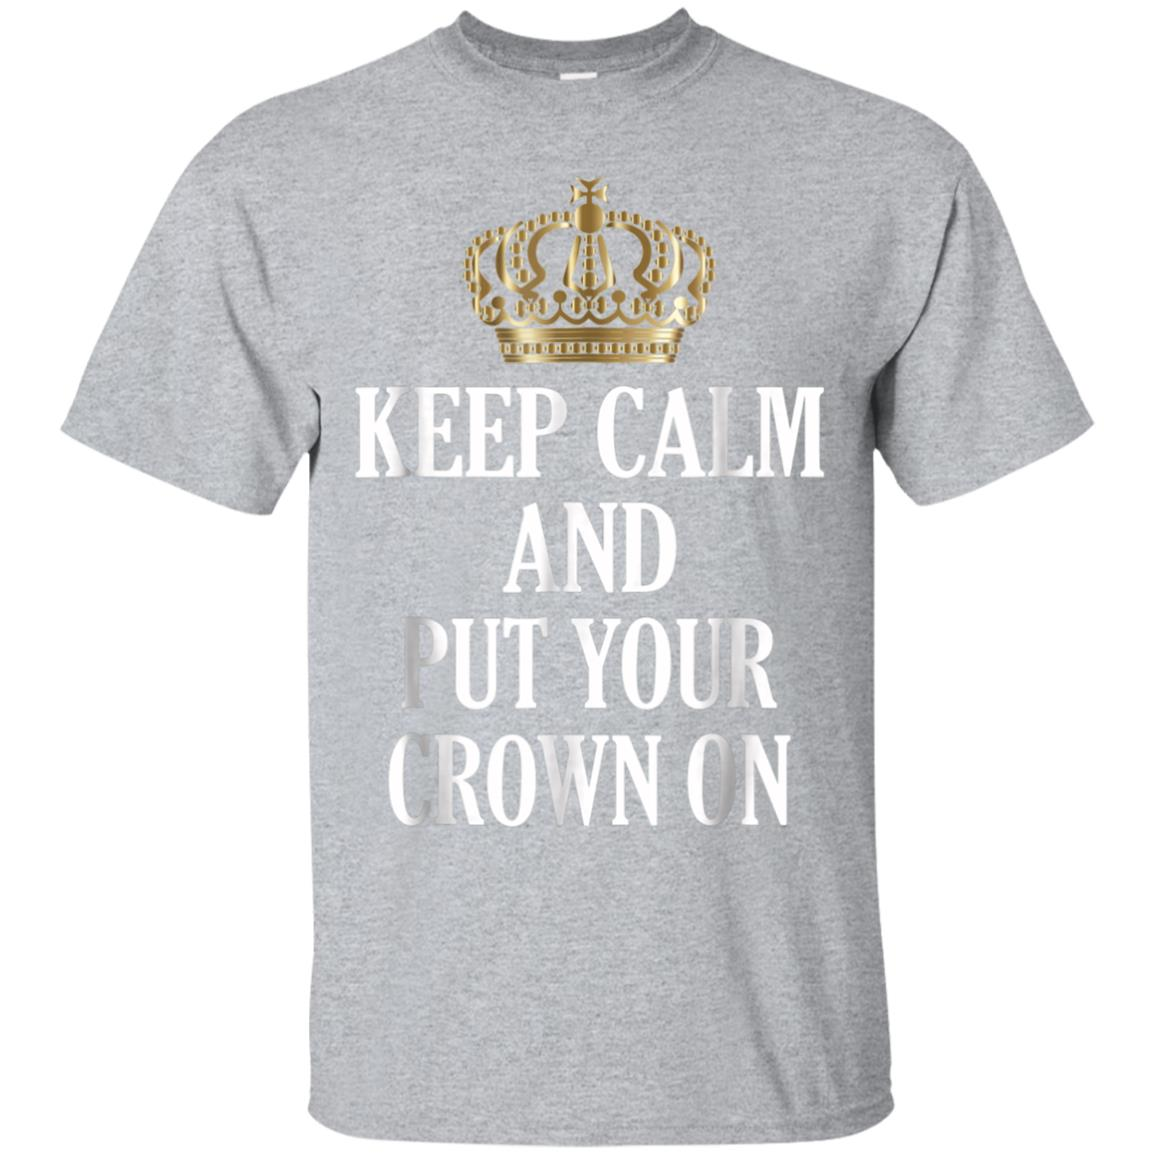 Royal Wedding 2018 Harry and Meghan Shirt Mens Womens Kids 99promocode